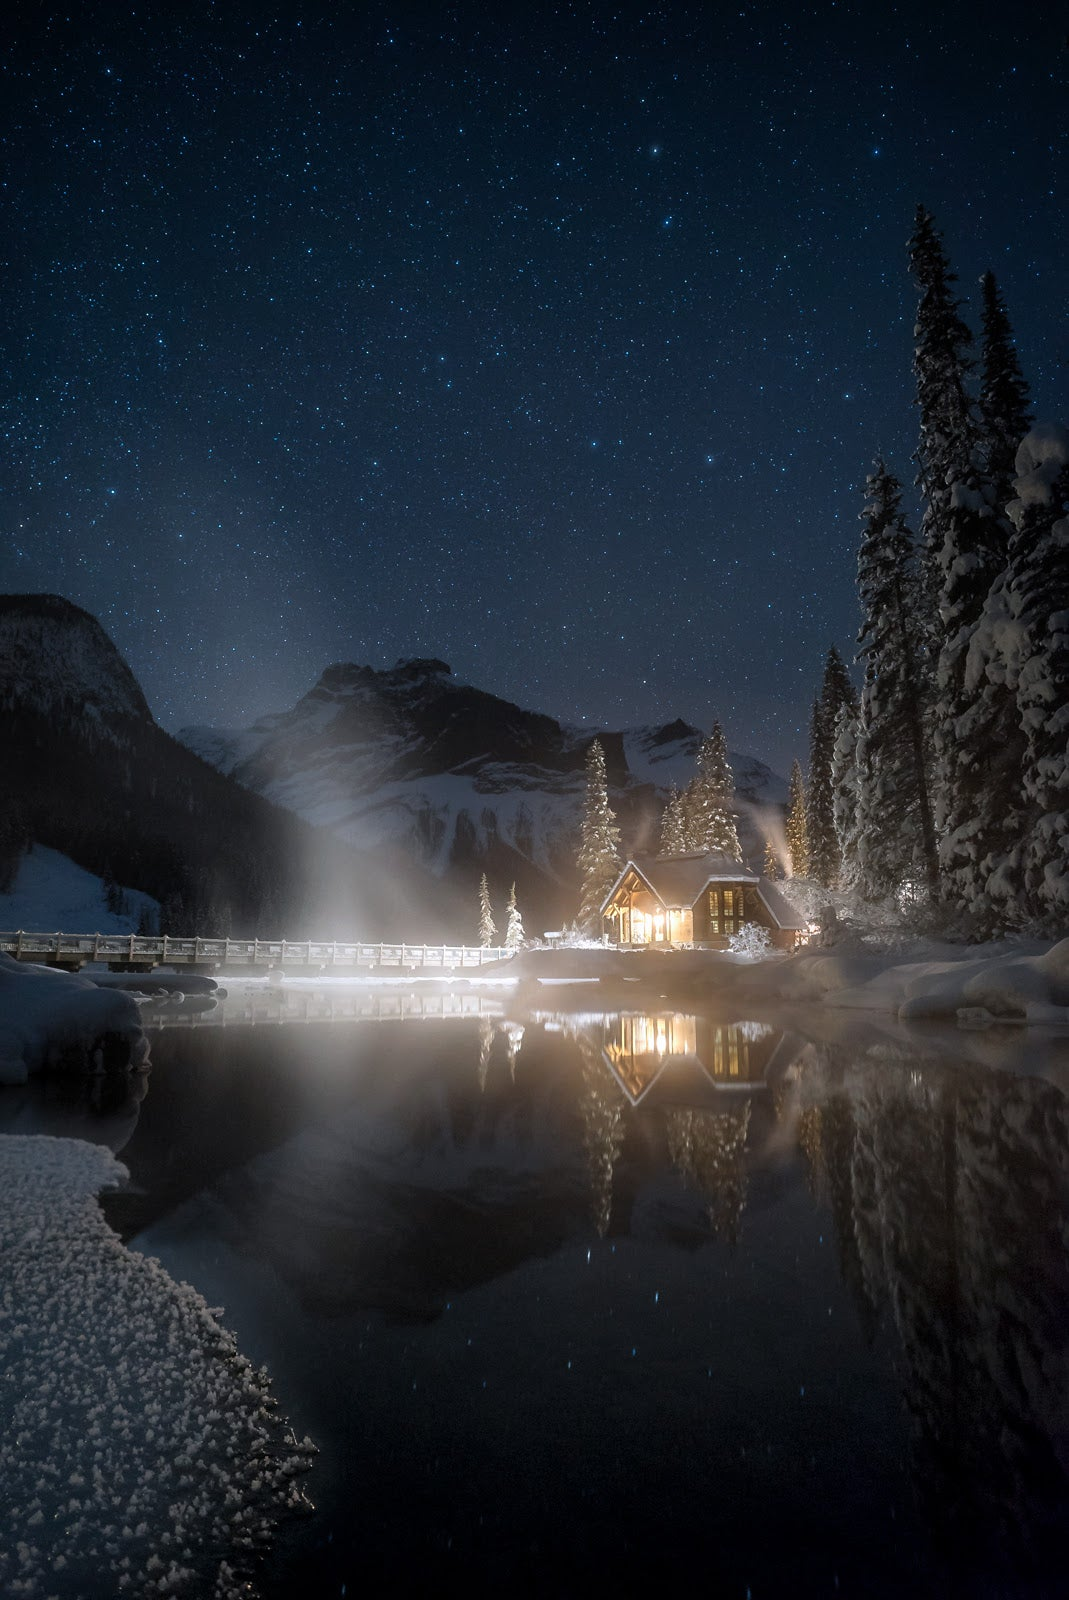 How To Get Started In Astrophotography Landscapes | Sony